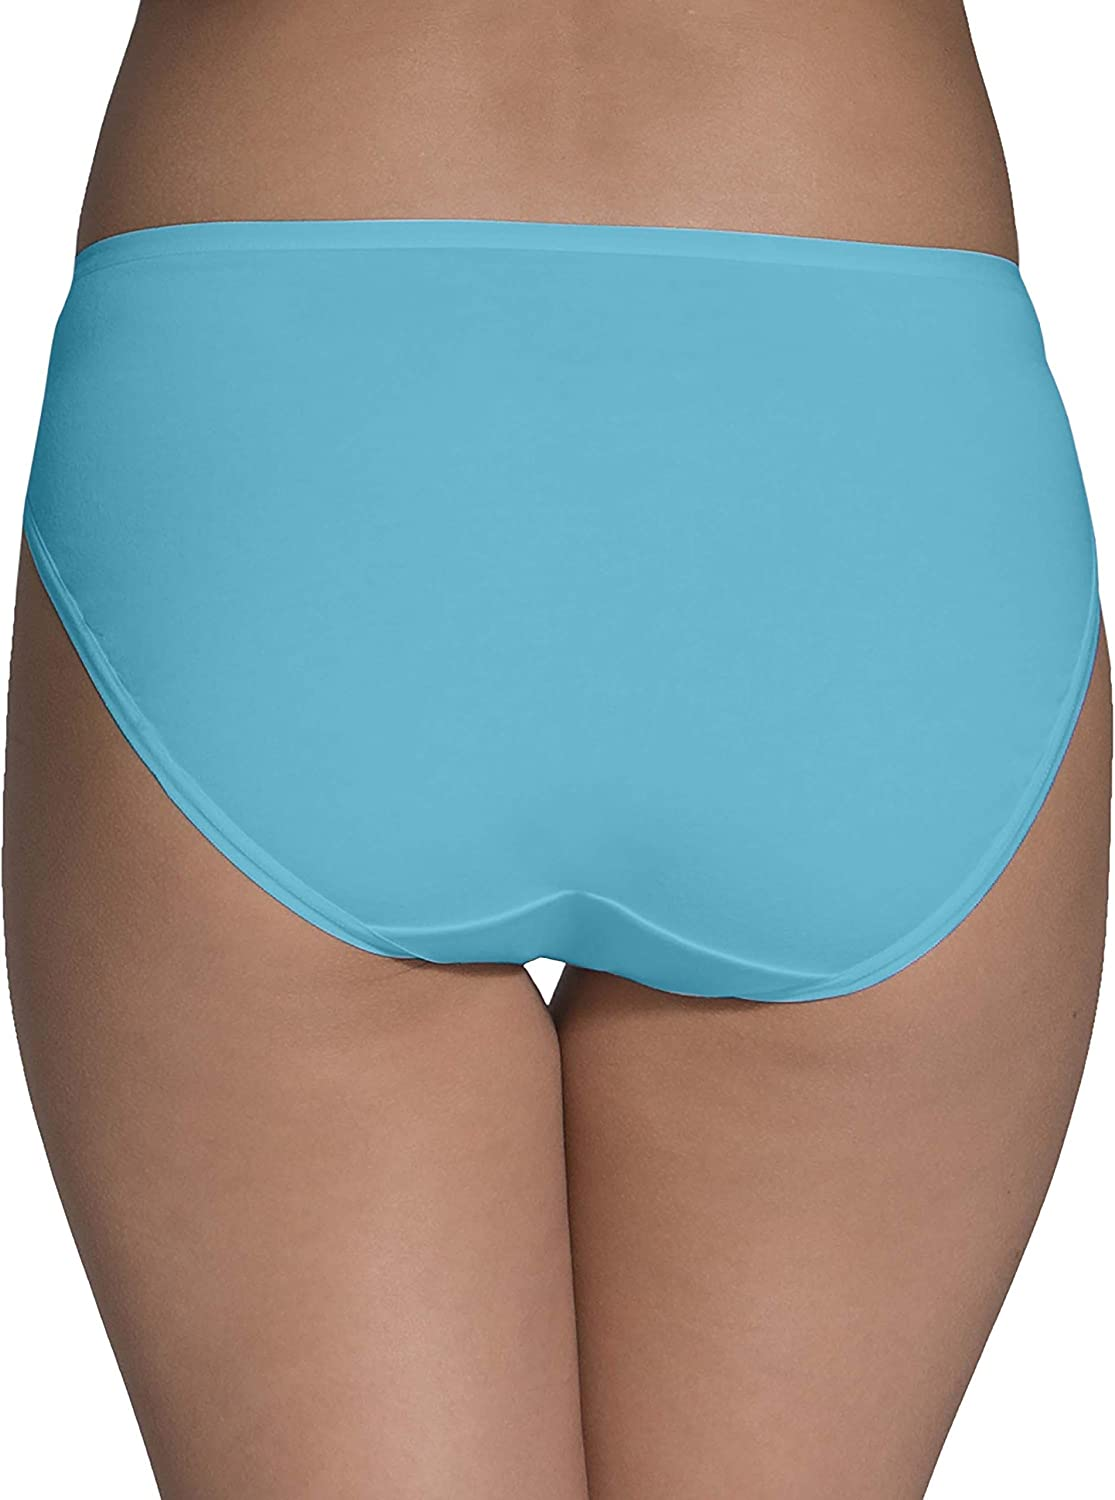 8 Hi-Cut X-Large Fruit Of The Loom Womens Underwear Moisture Wicking Coolblend Panties Fashion Assorted